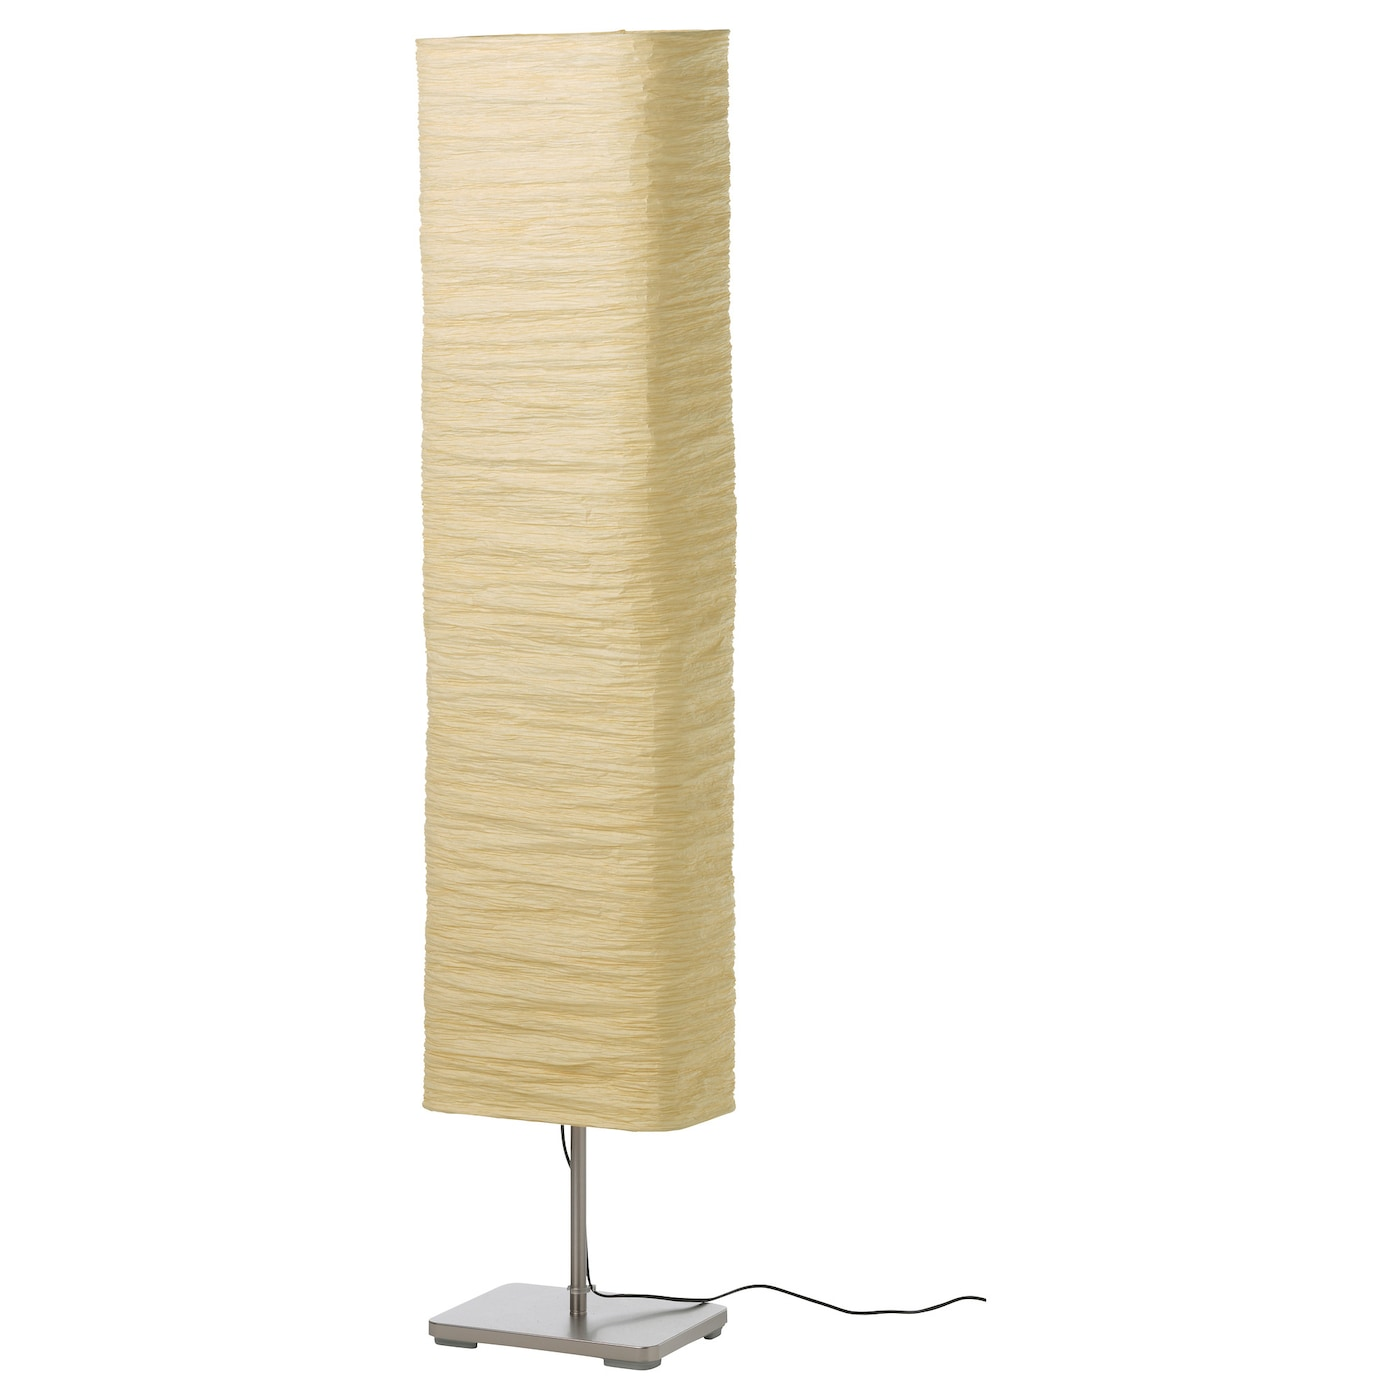 ikea lighting floor lamps. ikea magnarp floor lamp ikea lighting lamps b